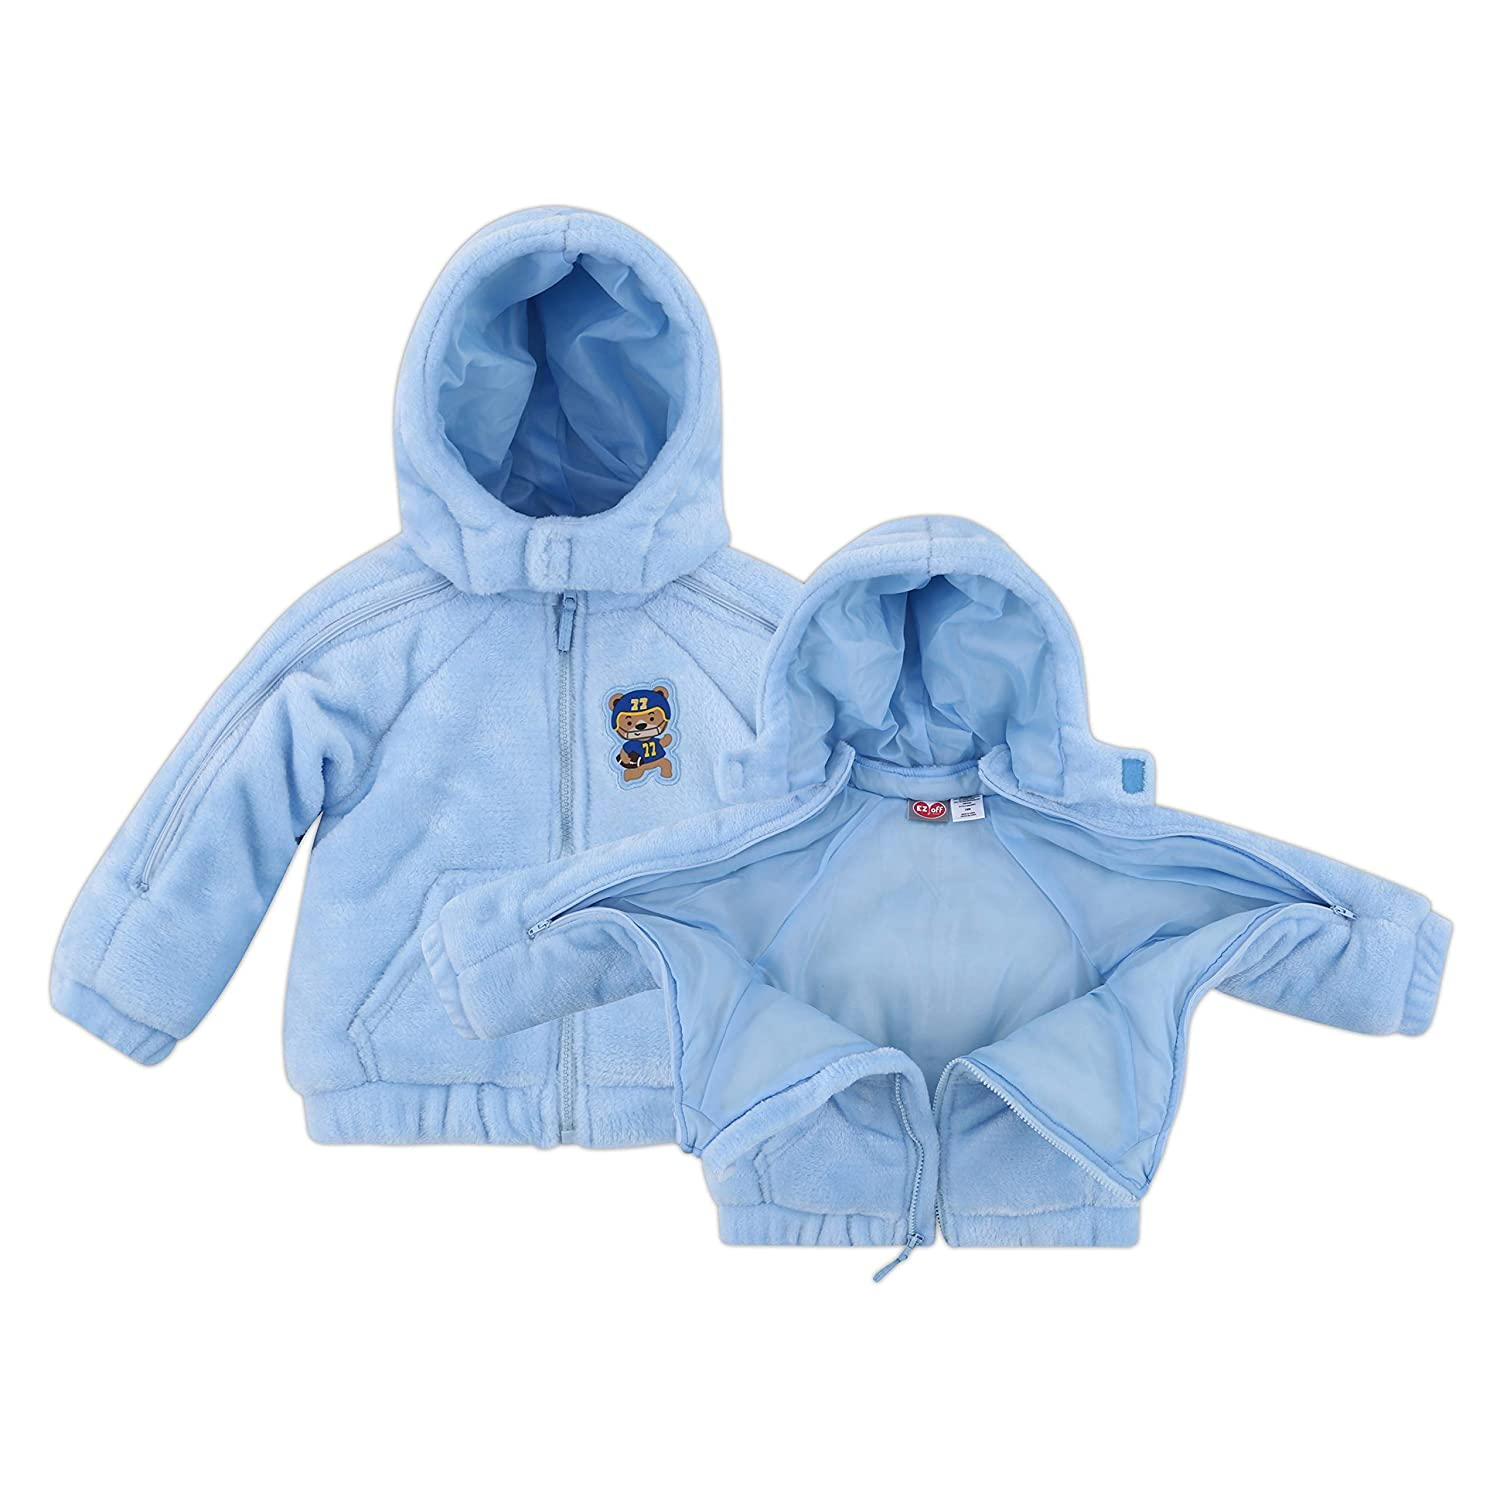 Perfect Baby Gift Infant Boy EZ Off Full Zip Hooded Warm Jacket Great for Sleeping Children